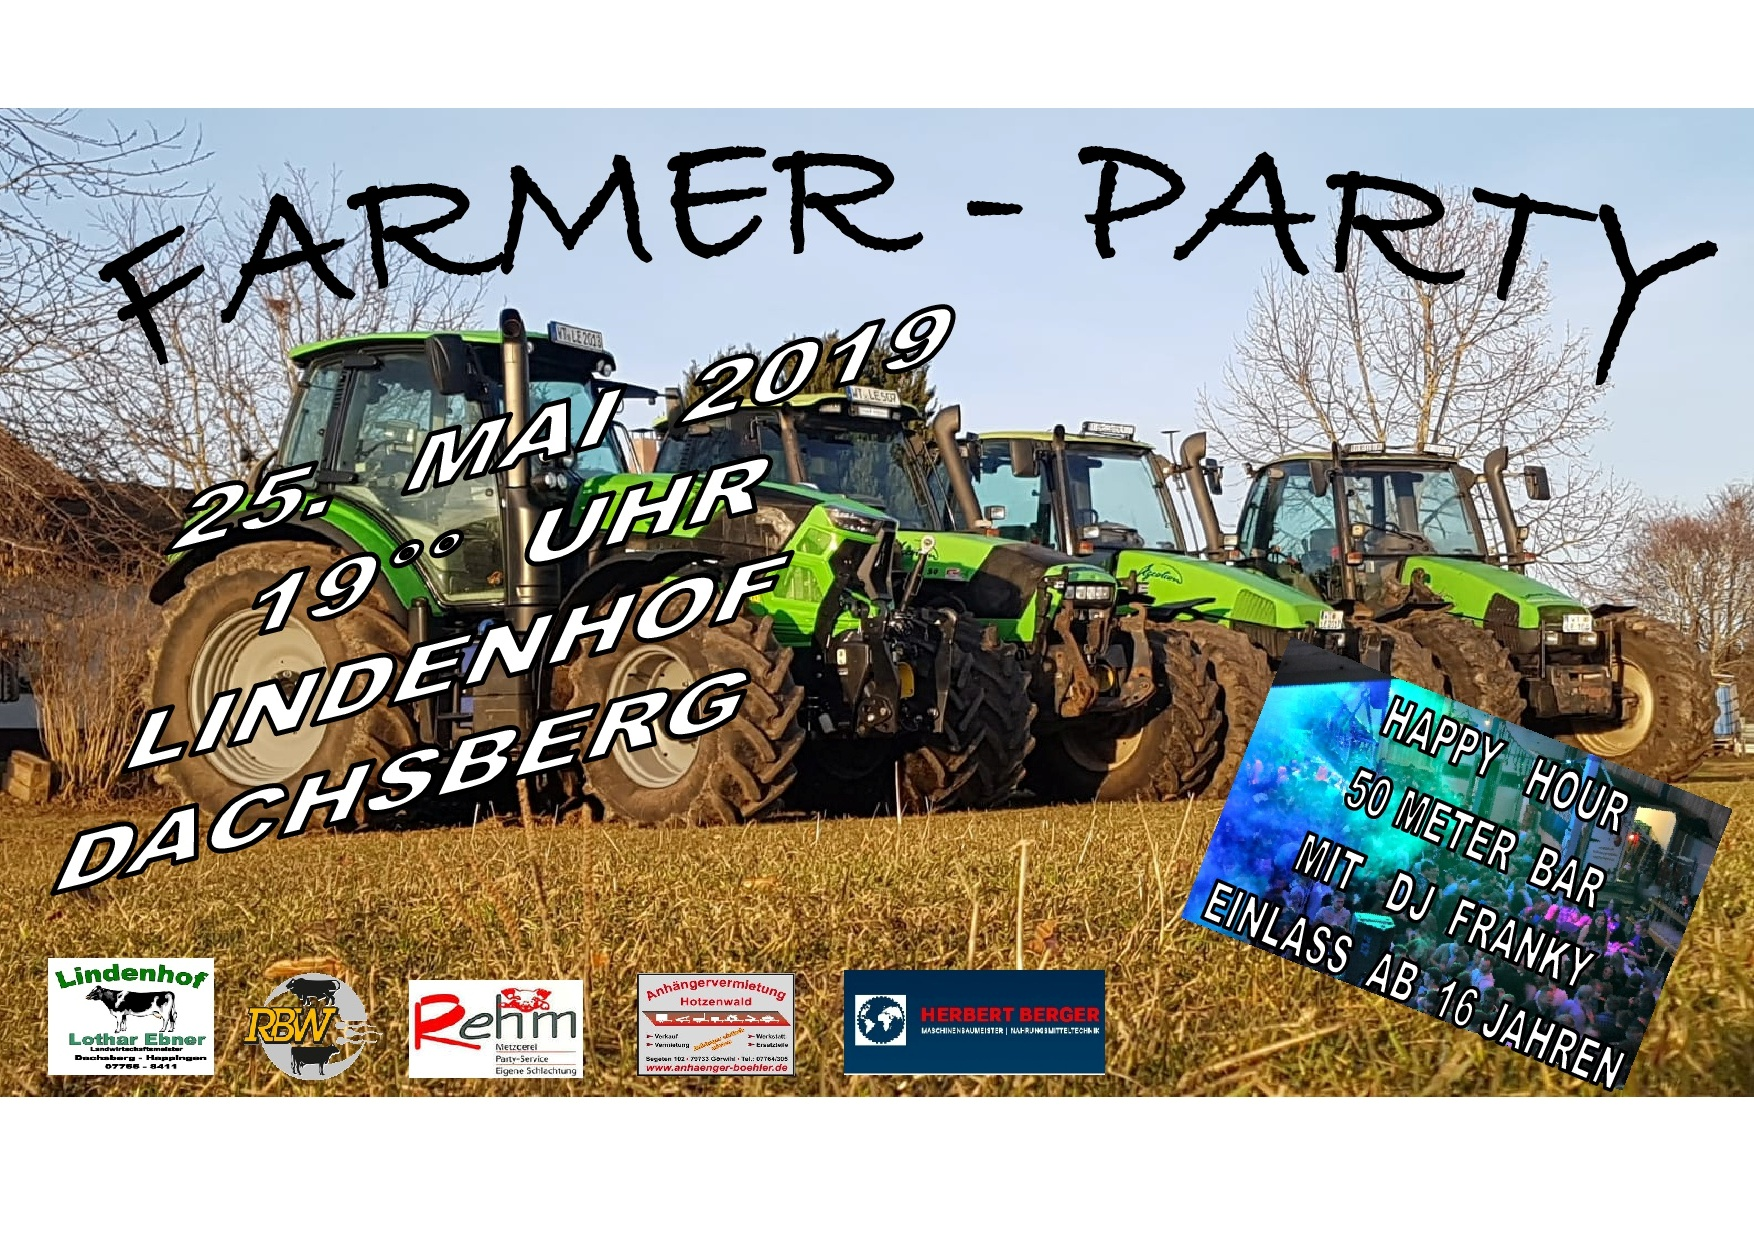 Farmers Party am 25.05.2019